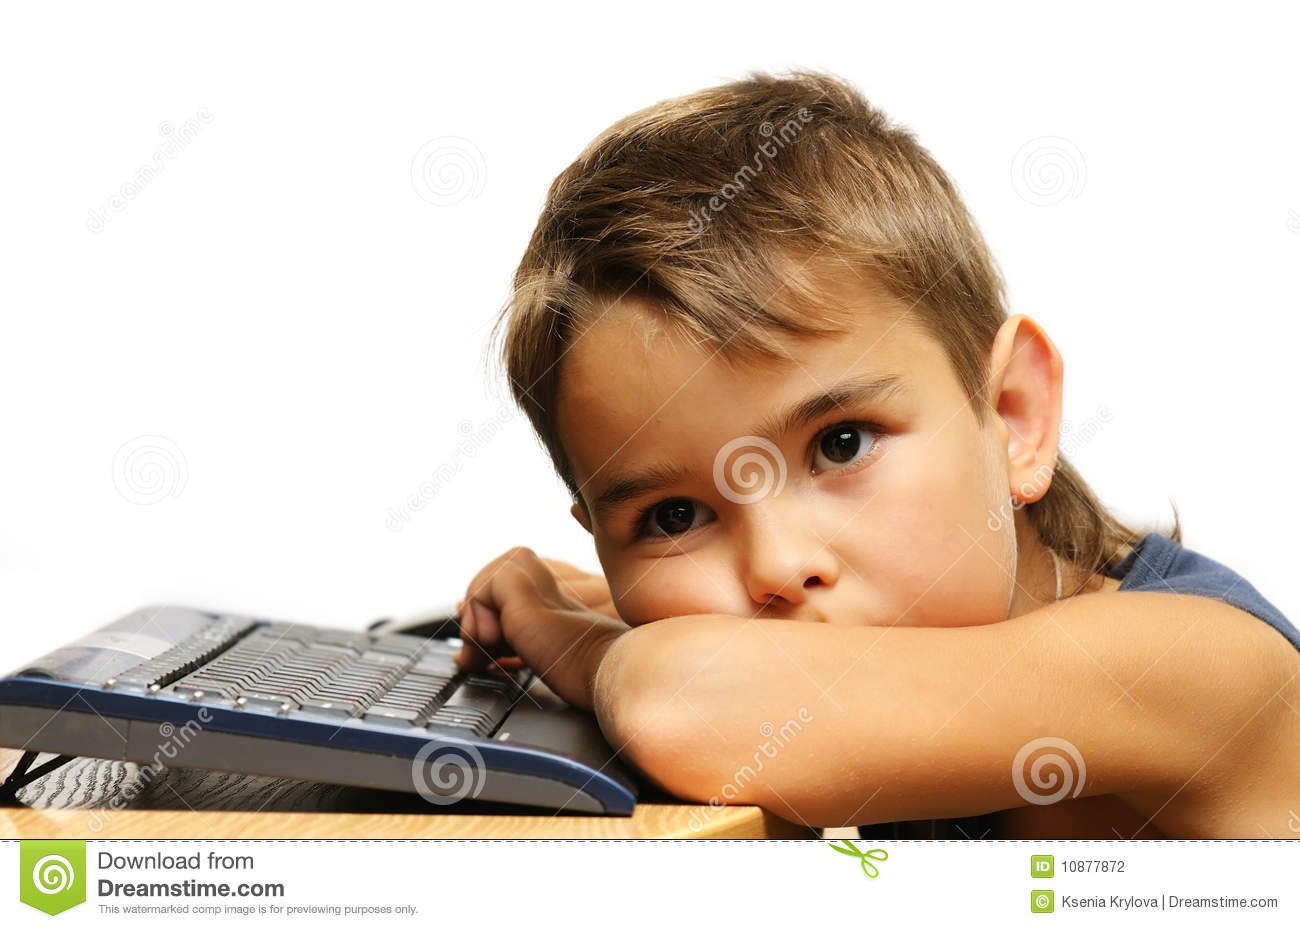 Tired Child Clip Art Tired kid put down his head